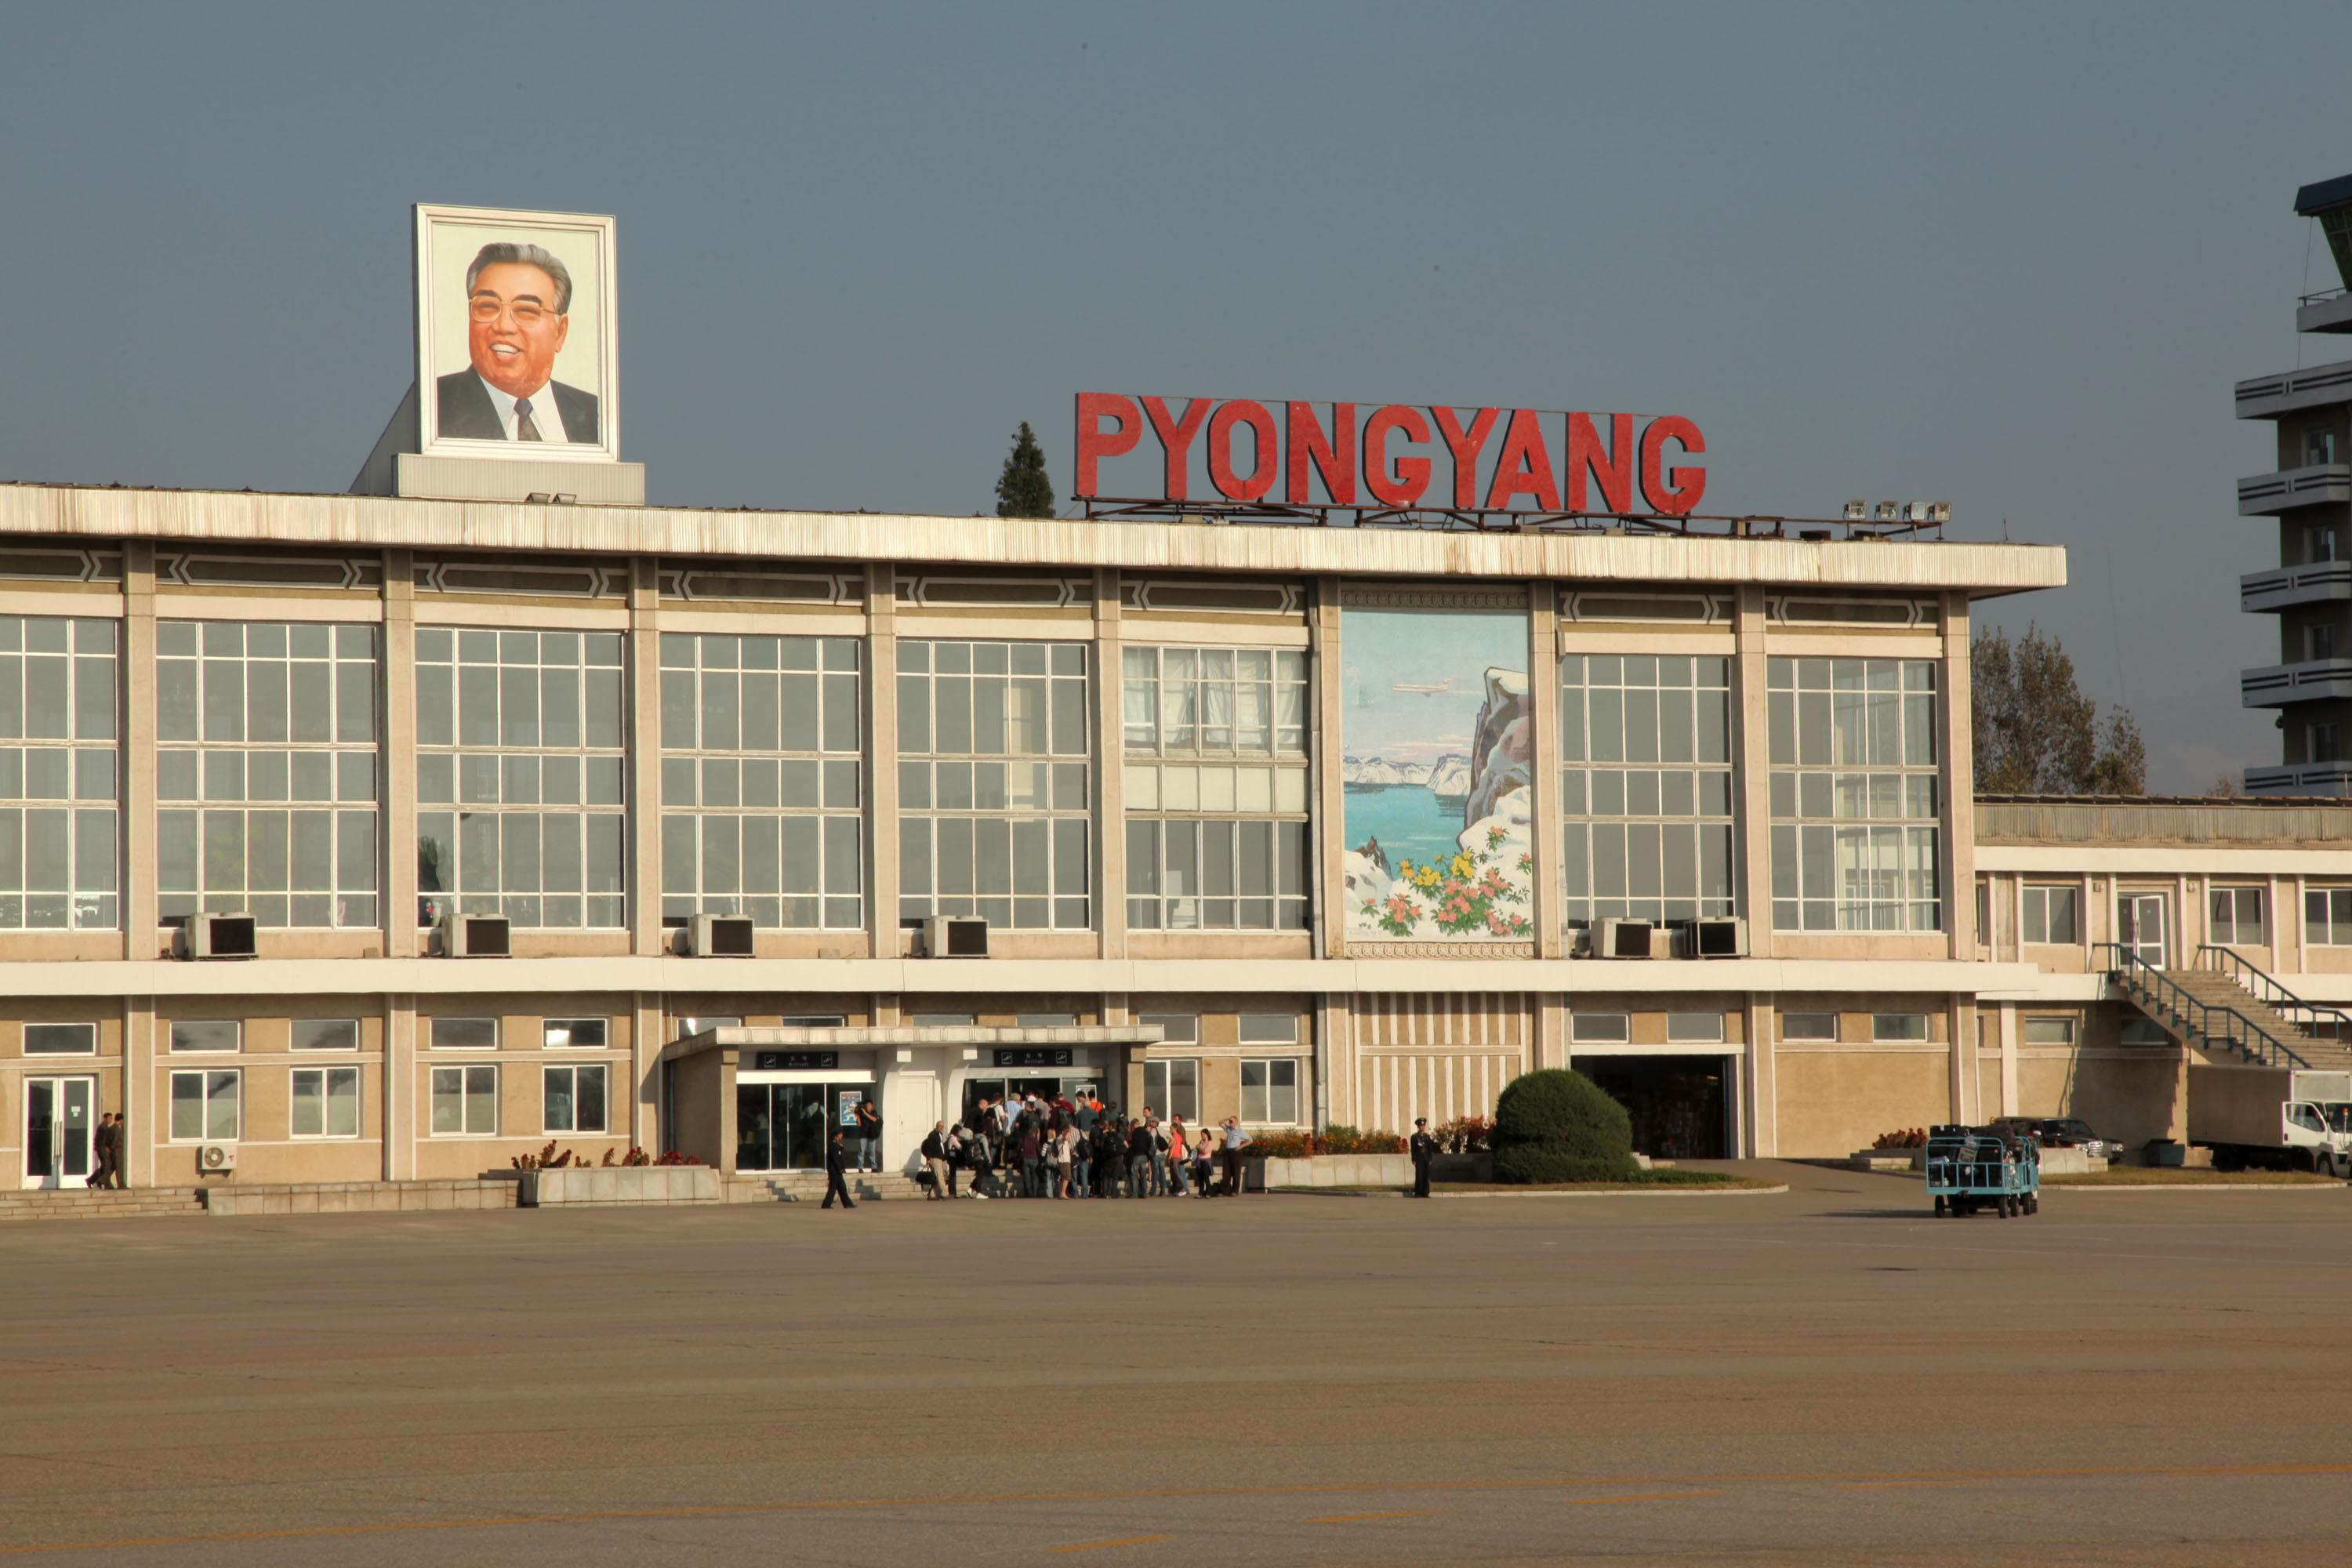 American citizen detained in North Korea airport